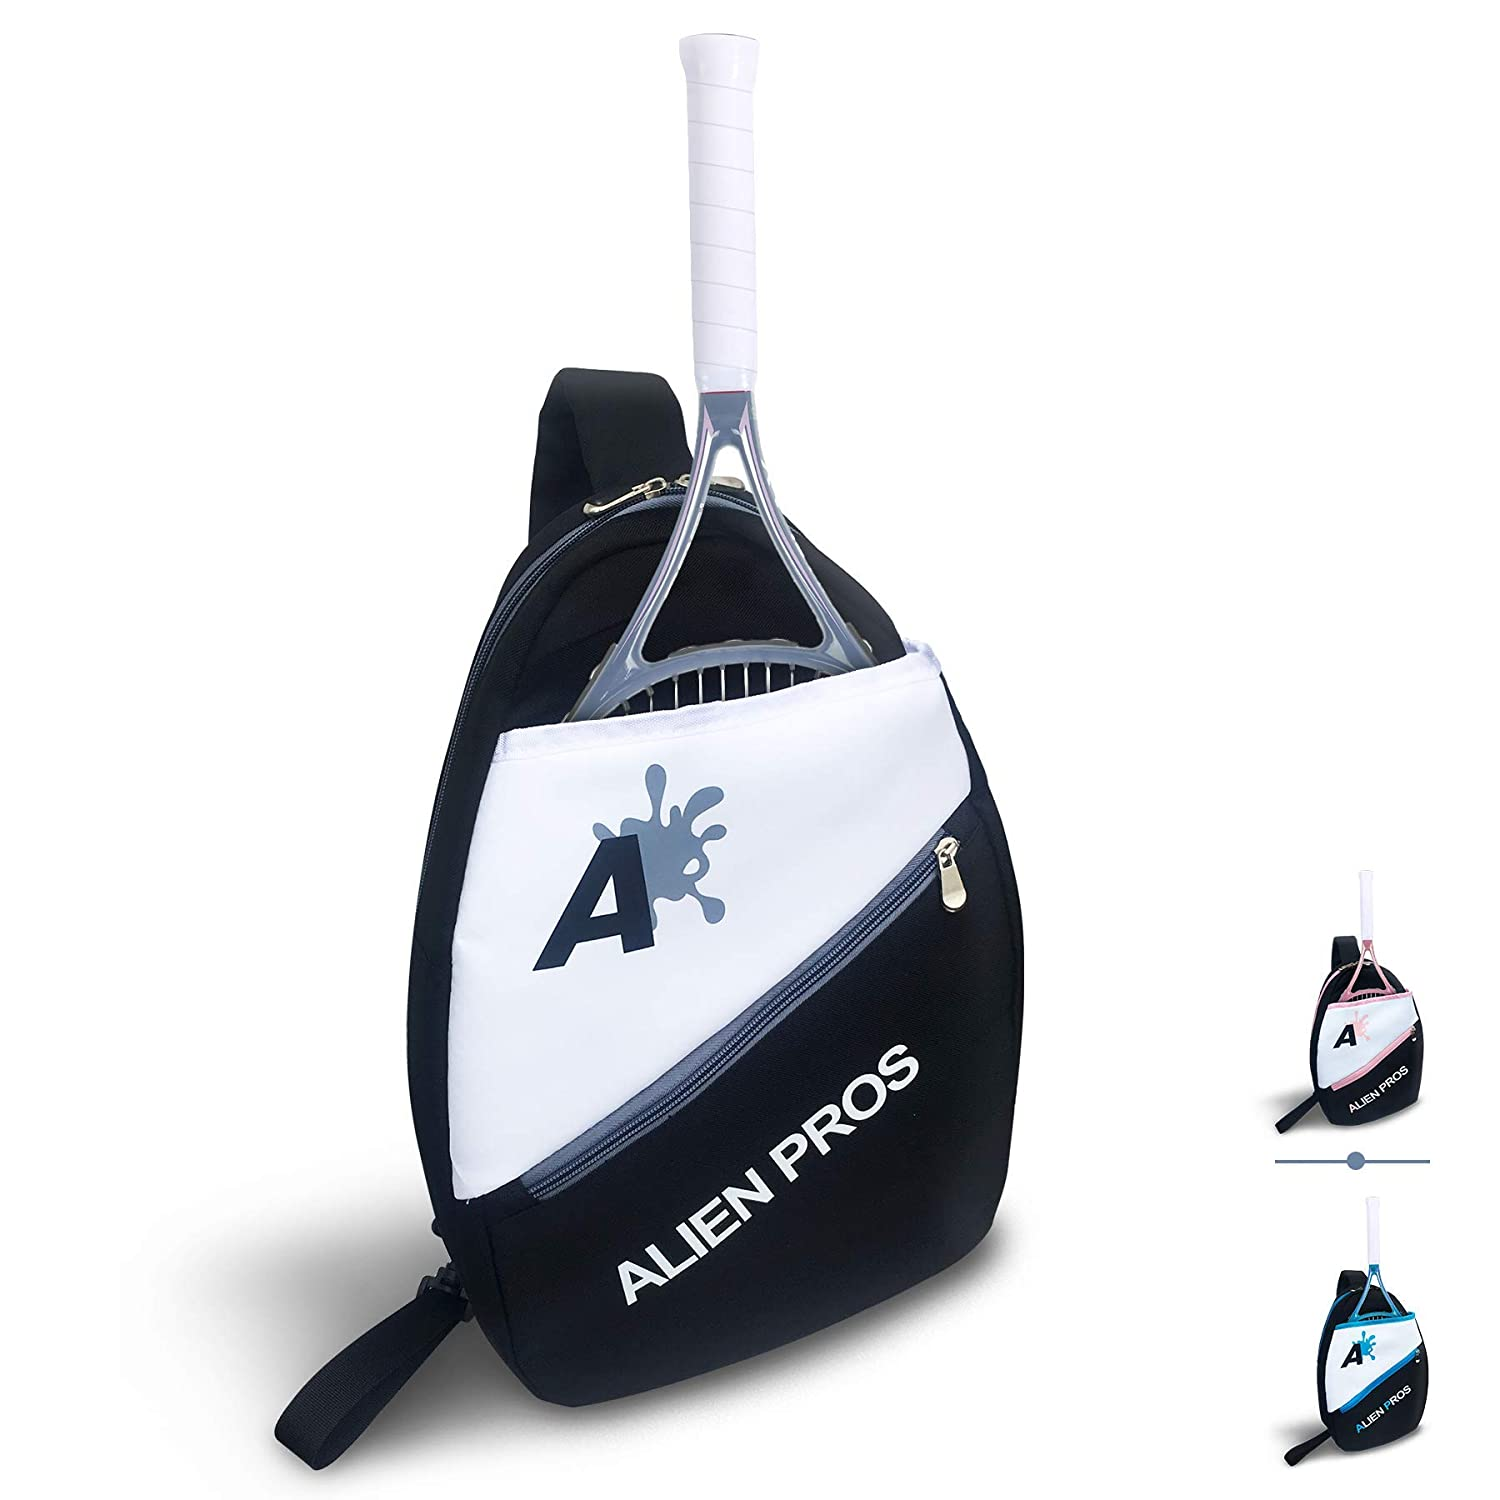 Alien Pros Lightweight Tennis Sling Backpack for Your Racket and Other Essentials - Pack Quickly and Lightly for Tennis and in Life - Tennis Racket ...